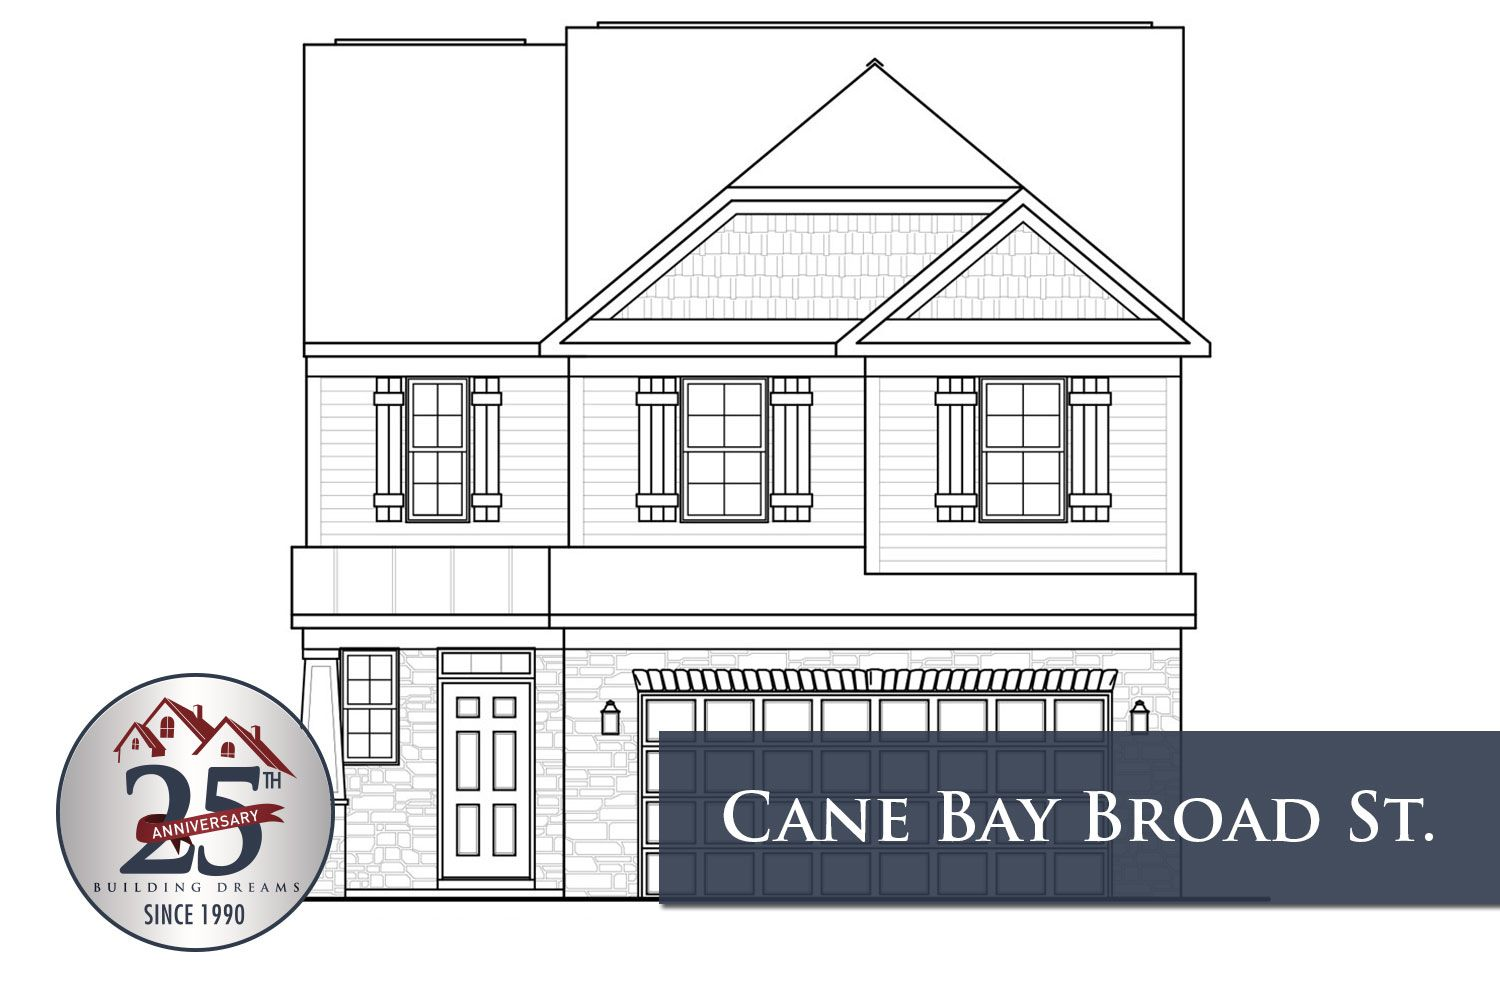 Cane Bay Broad St.